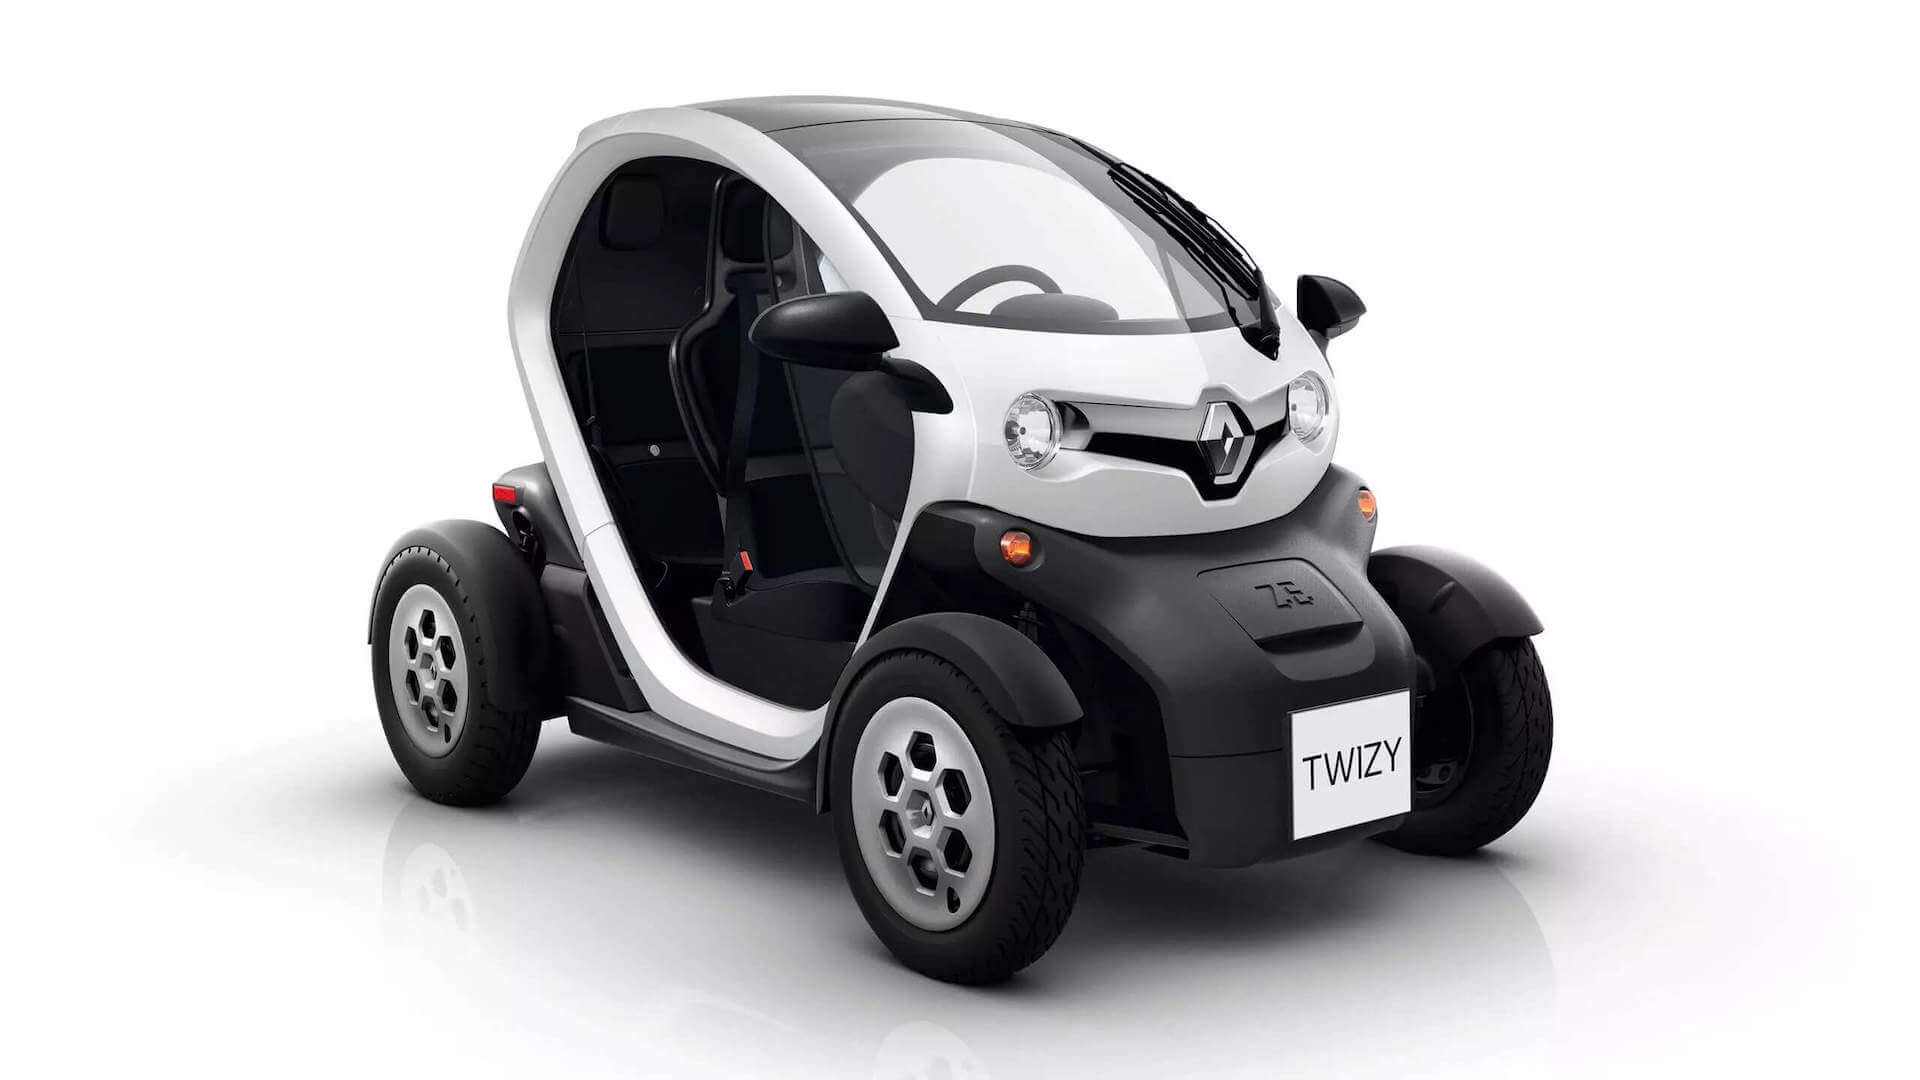 Frontansicht vom Auto - Renault Twizy - Renault Ahrens Hannover